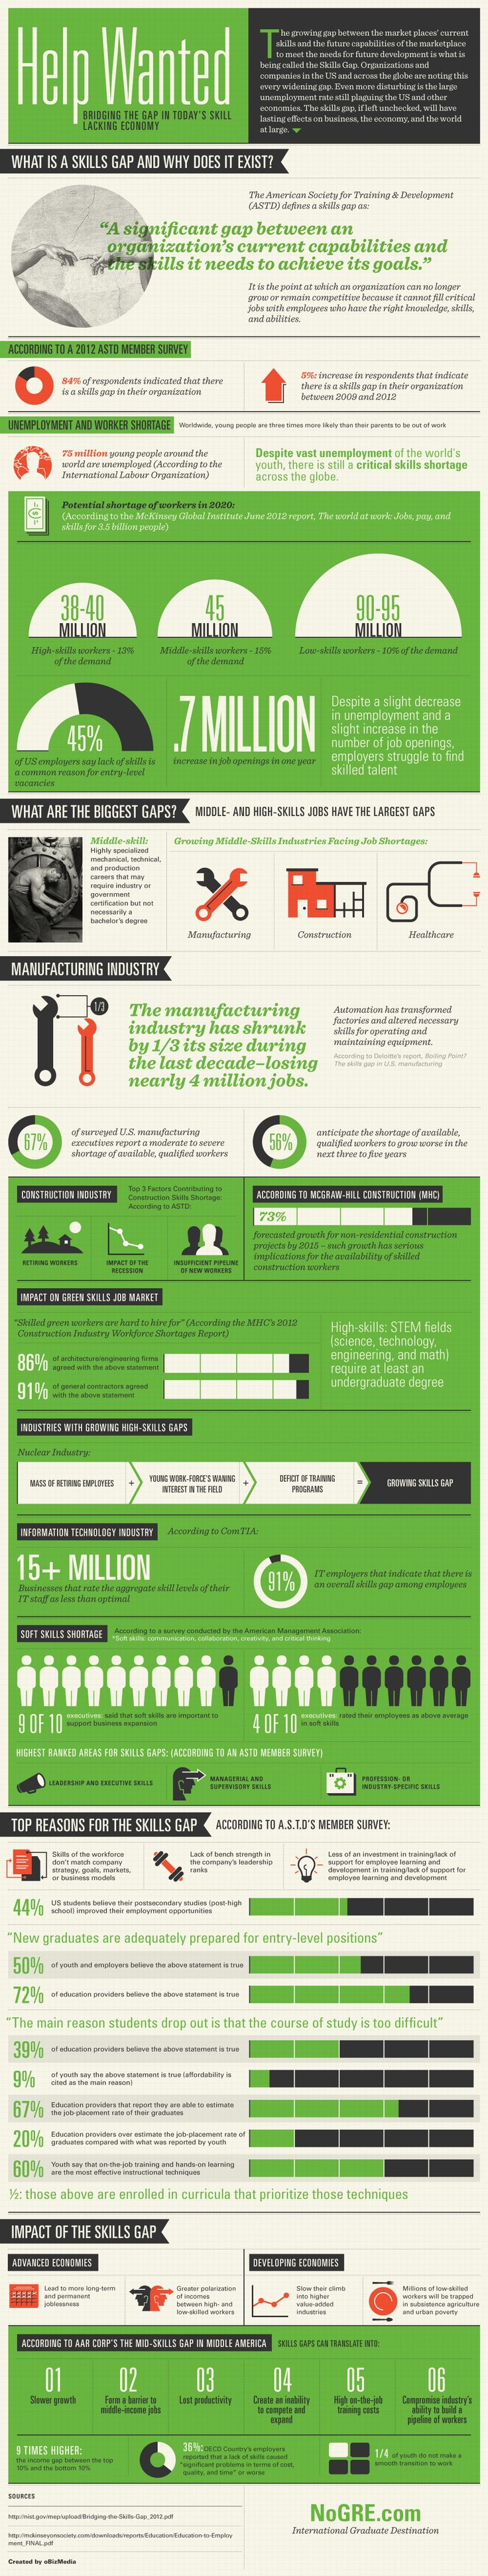 The Skills Gap Infographic - http://elearninginfographics.com/skills-gap-infographic/